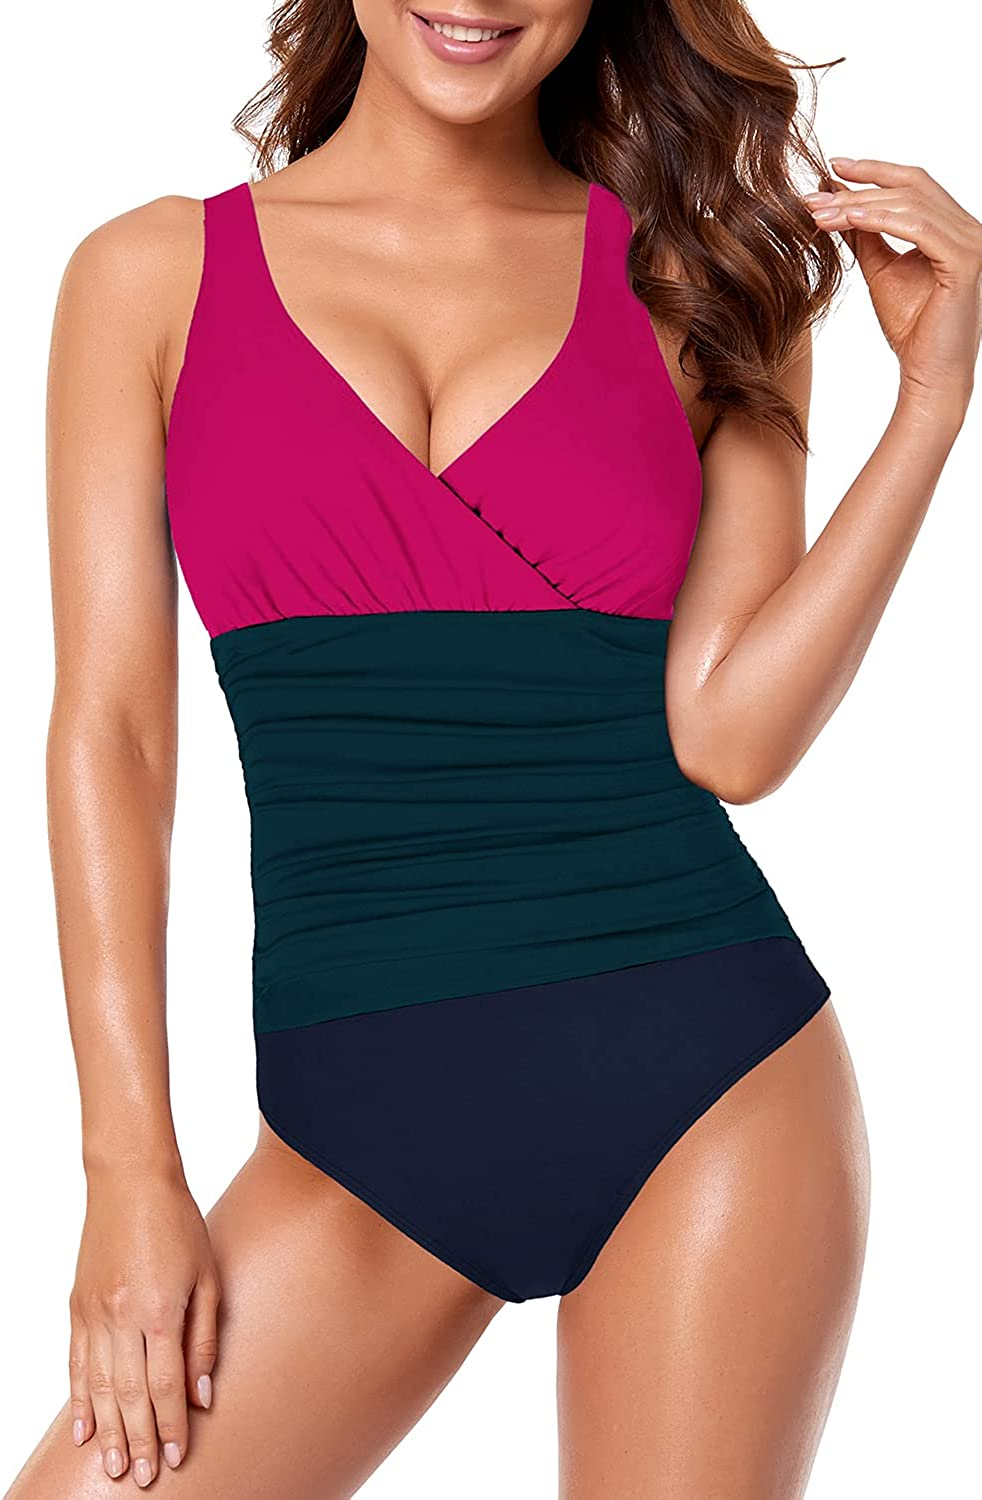 Upopby Women's One Piece Slimming Swimsuits for Women Tummy Control Bathing Suits V Neck Ruched Plus Size Swimwear